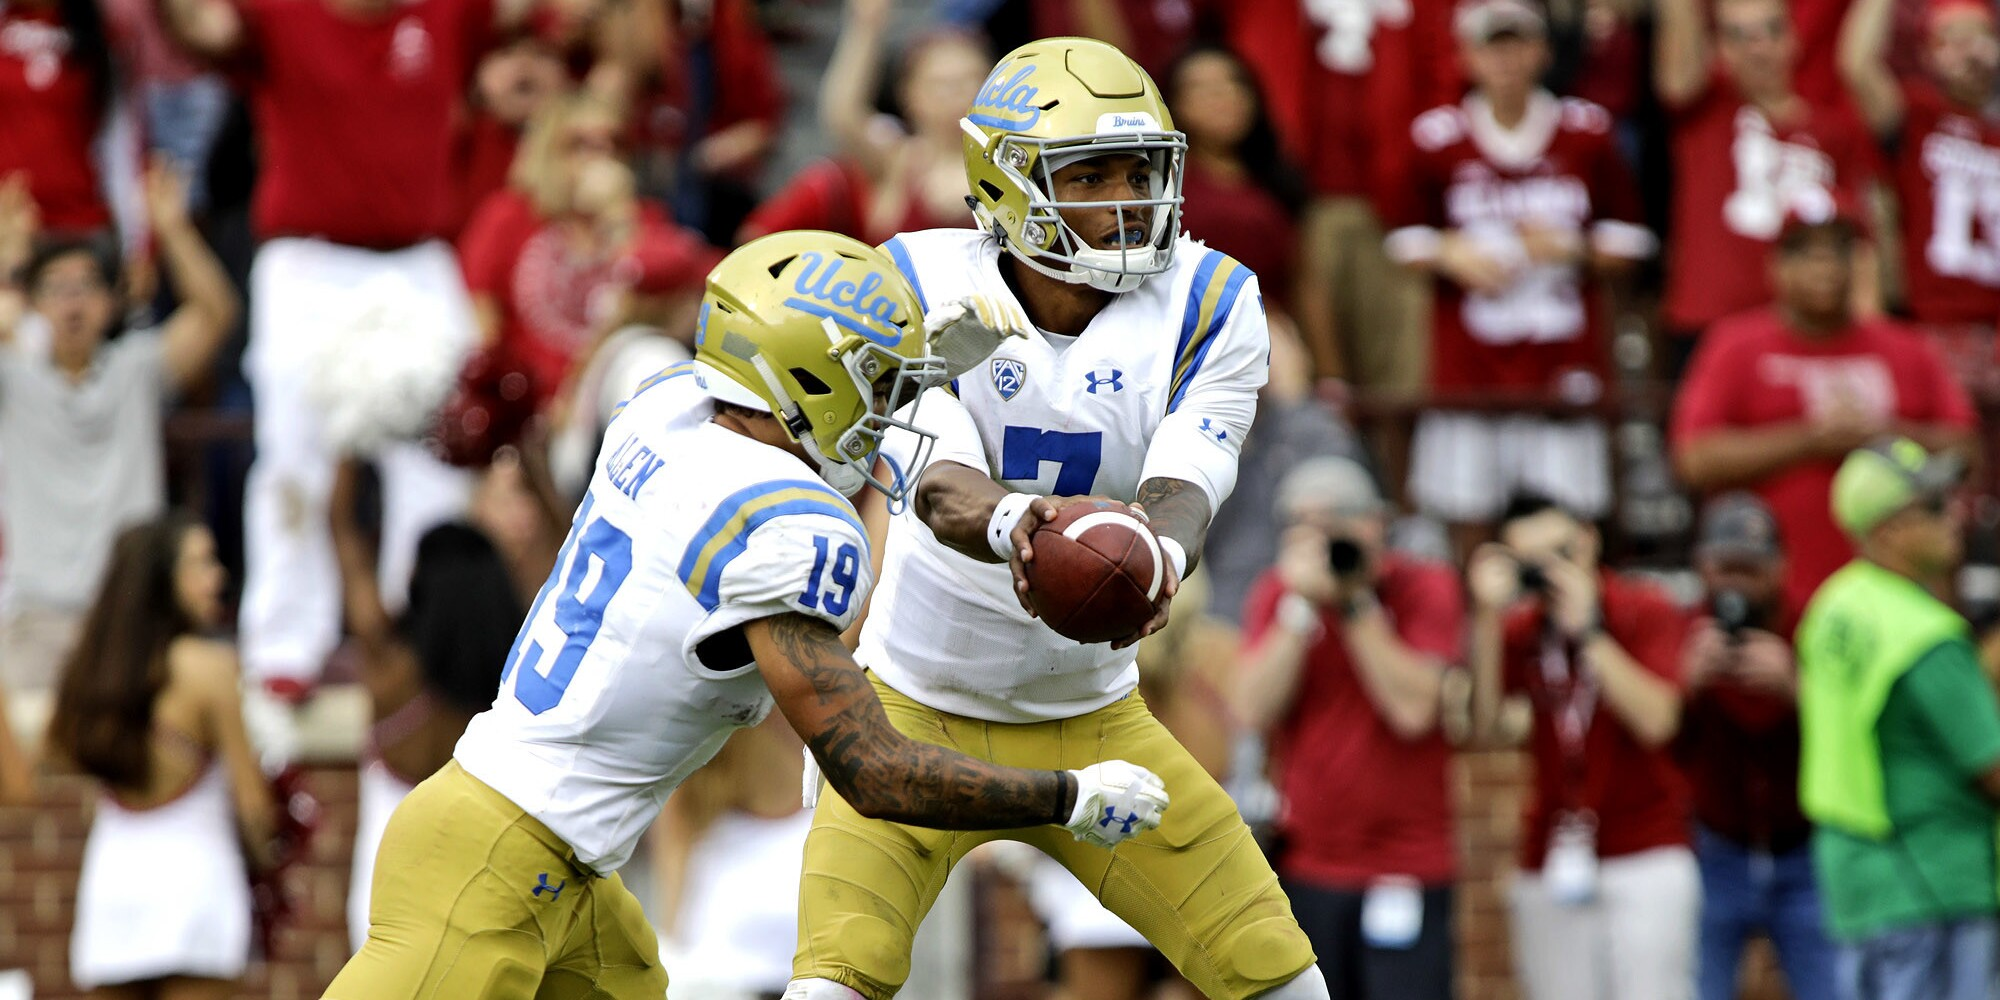 UCLA vs. Fresno State: Bulldogs 38, Bruins 14, fourth quarter